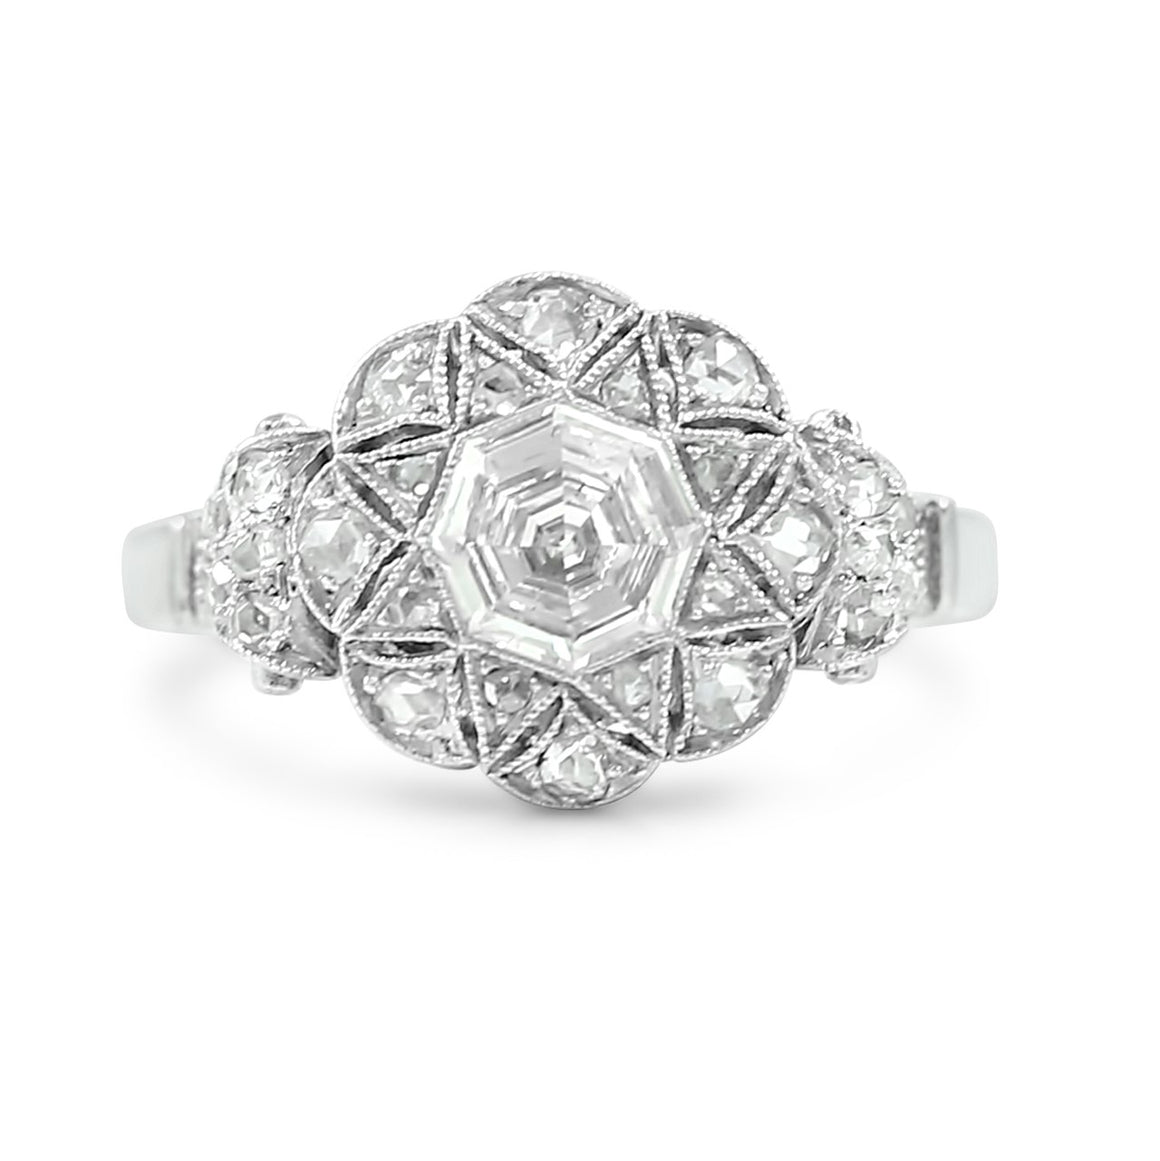 platinum octagon shaped antique engagement ring with milgrain details and a flower pattern of diamonds created circa 1930